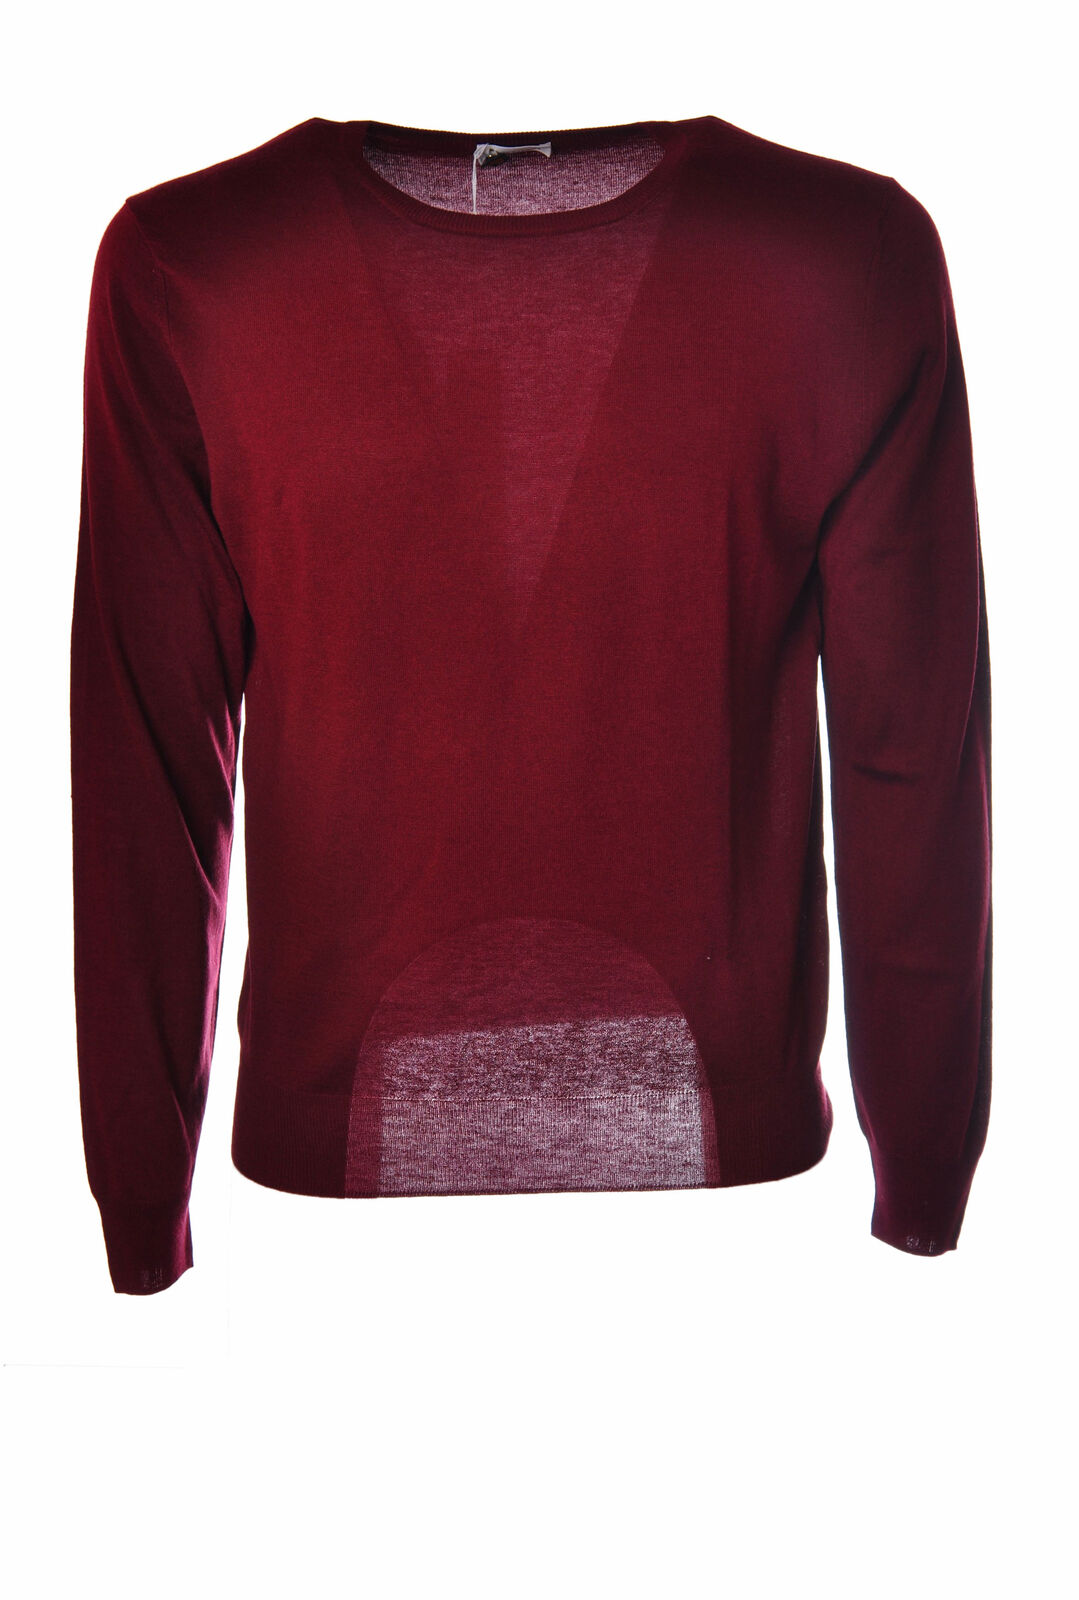 Heritage  -  Sweaters - Male - Red - 2618628N173907